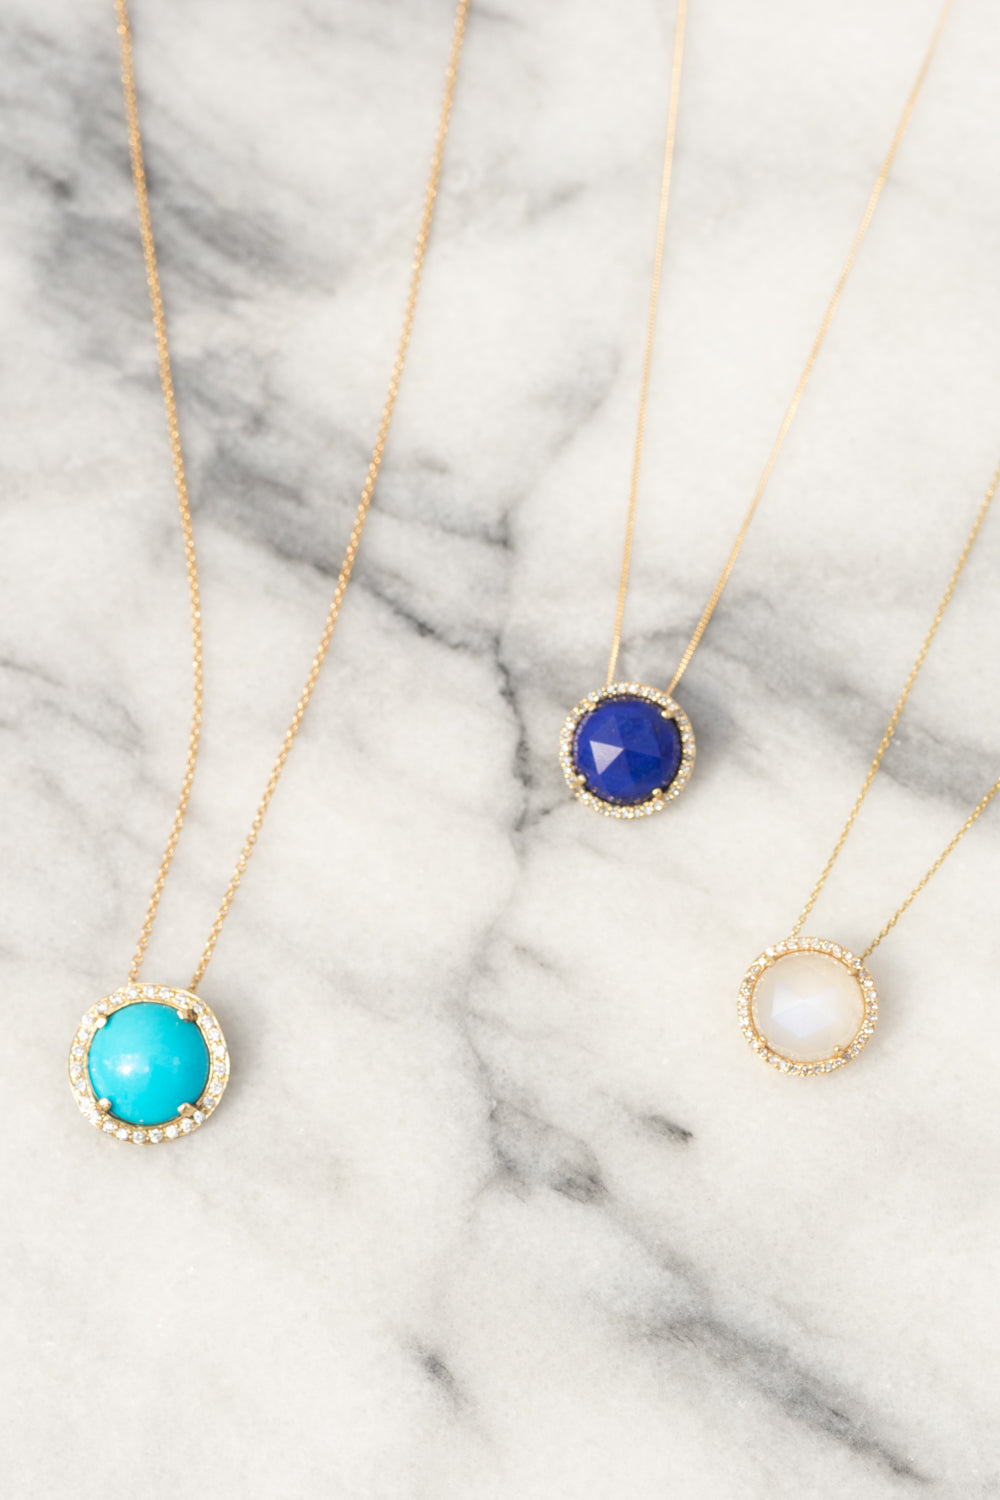 Janna Conner Sleeping Beauty Turquoise, Lapis and Moonstone Necklaces with Diamond Pavé, 14K Yellow Gold